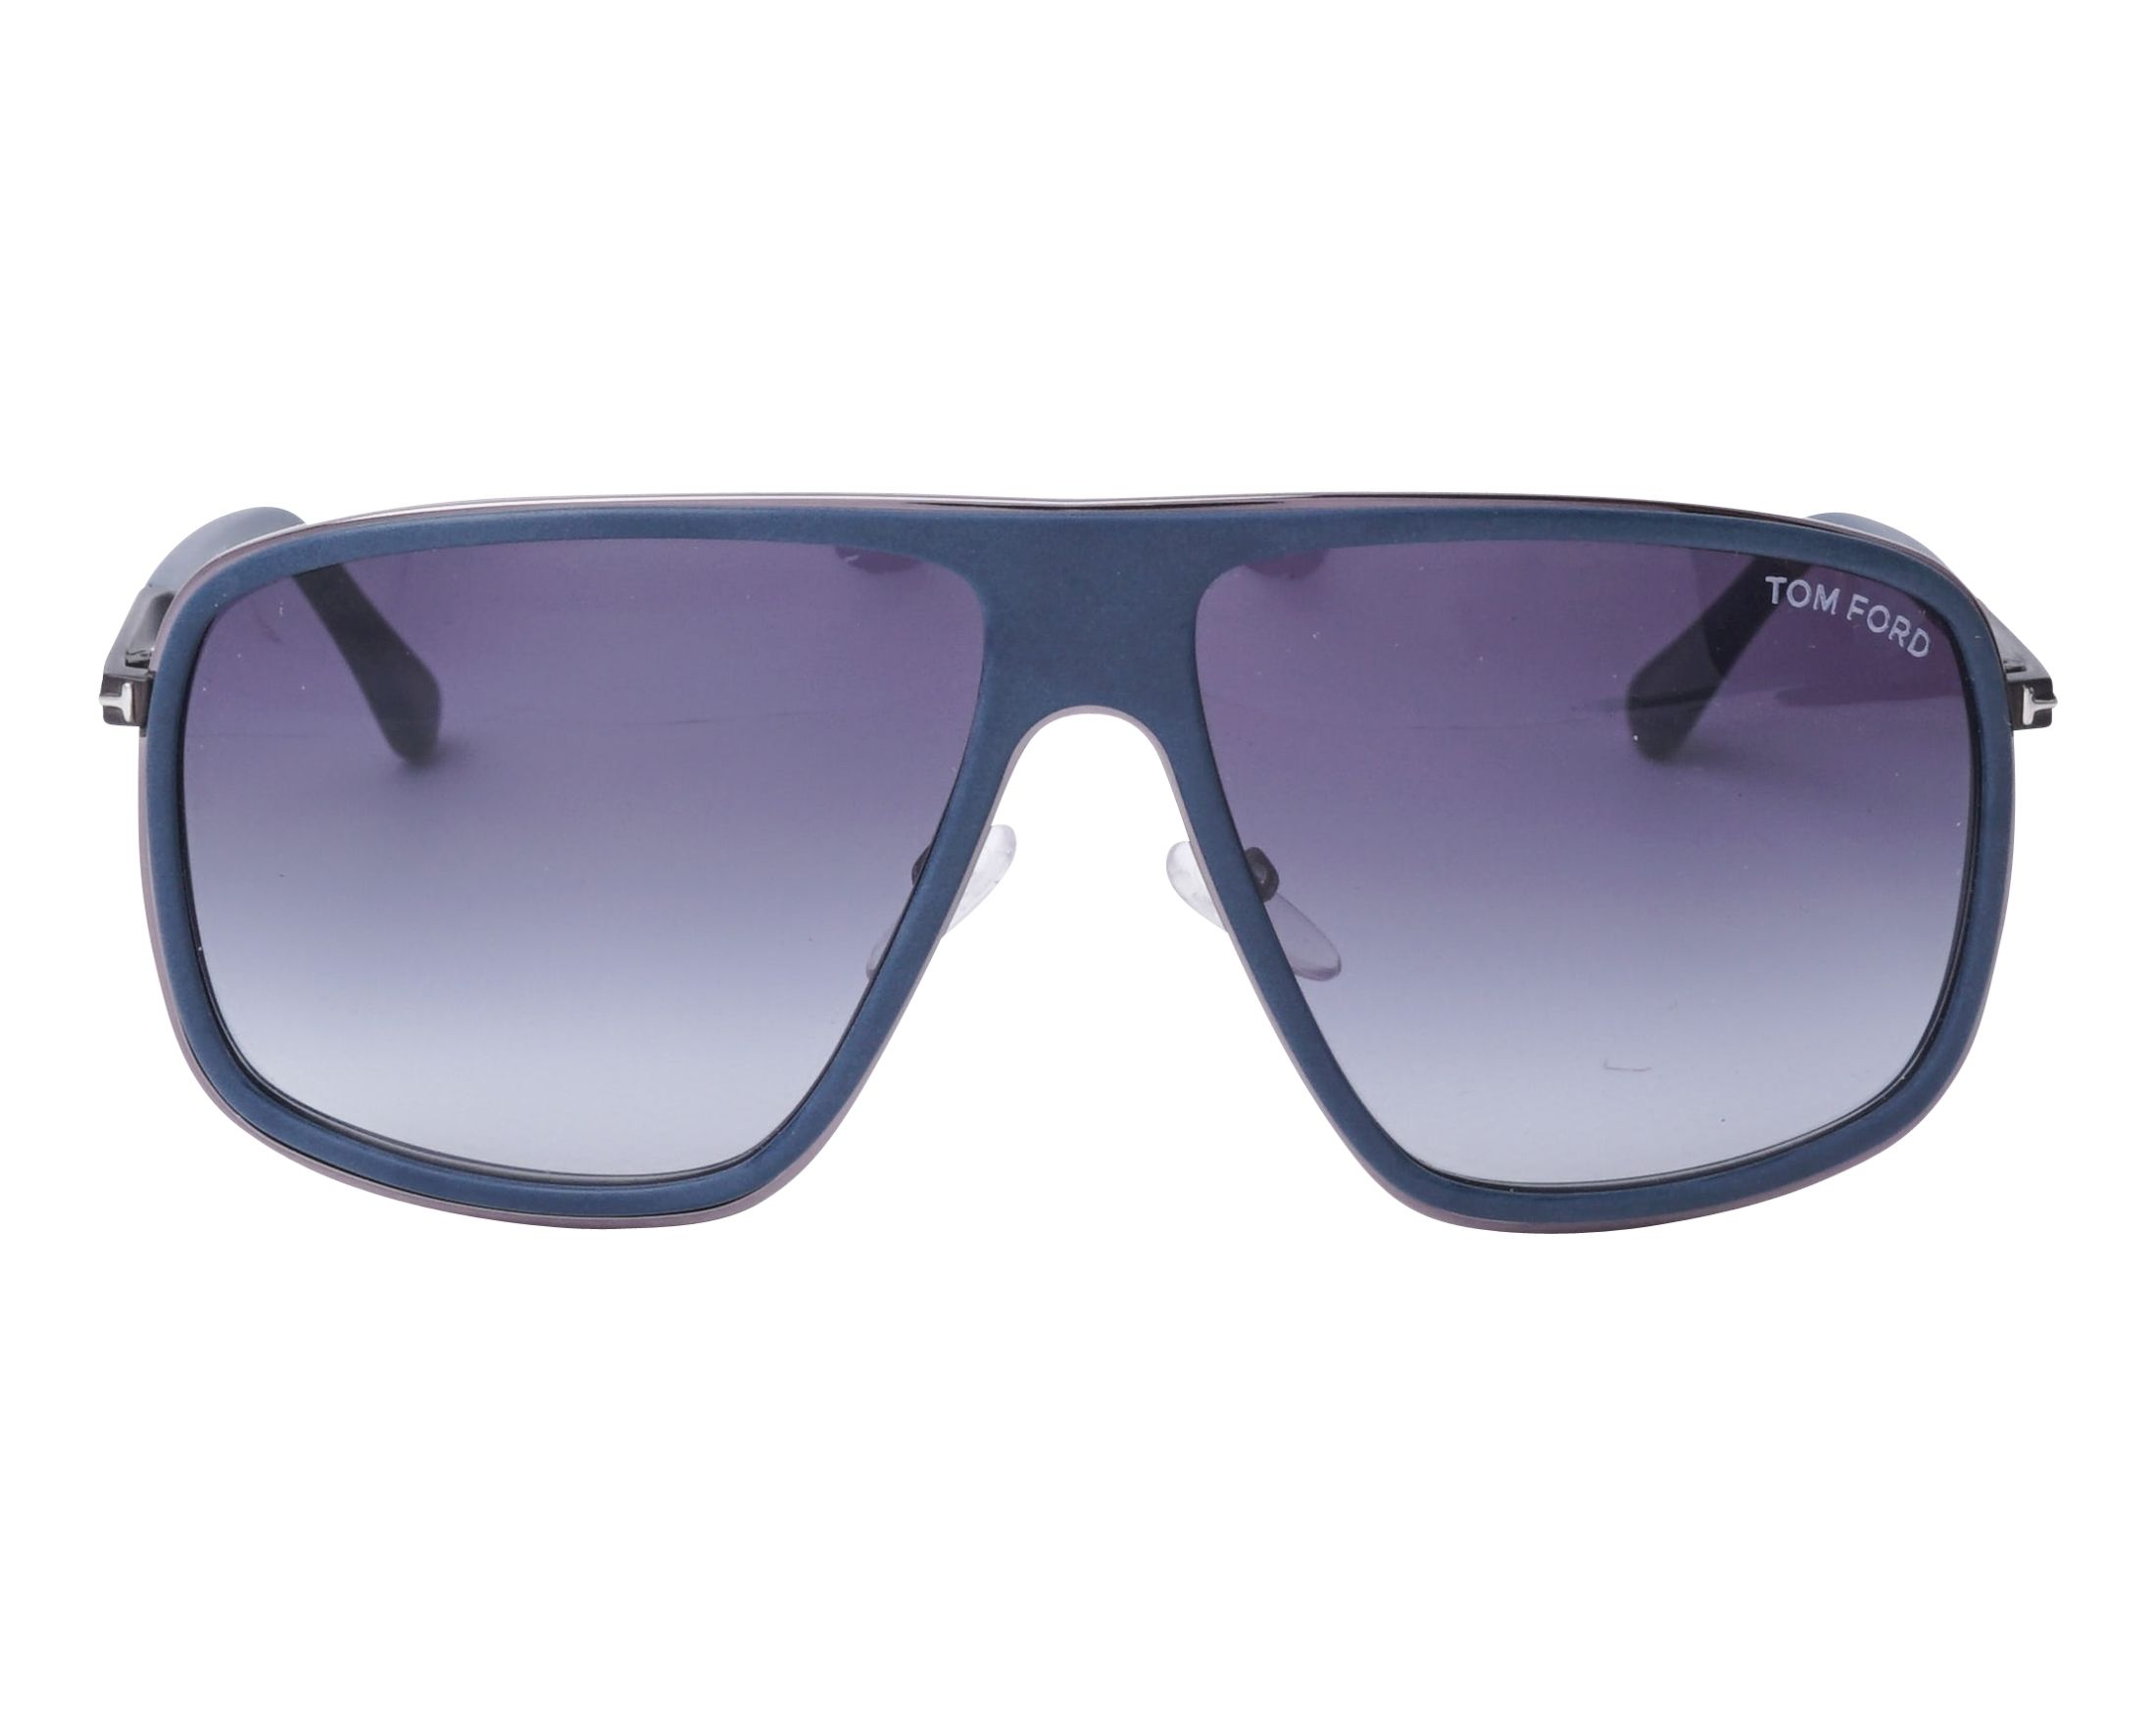 ac38fa18c3 Sunglasses Tom Ford FT-463 92W 60-13 Blue Gun front view